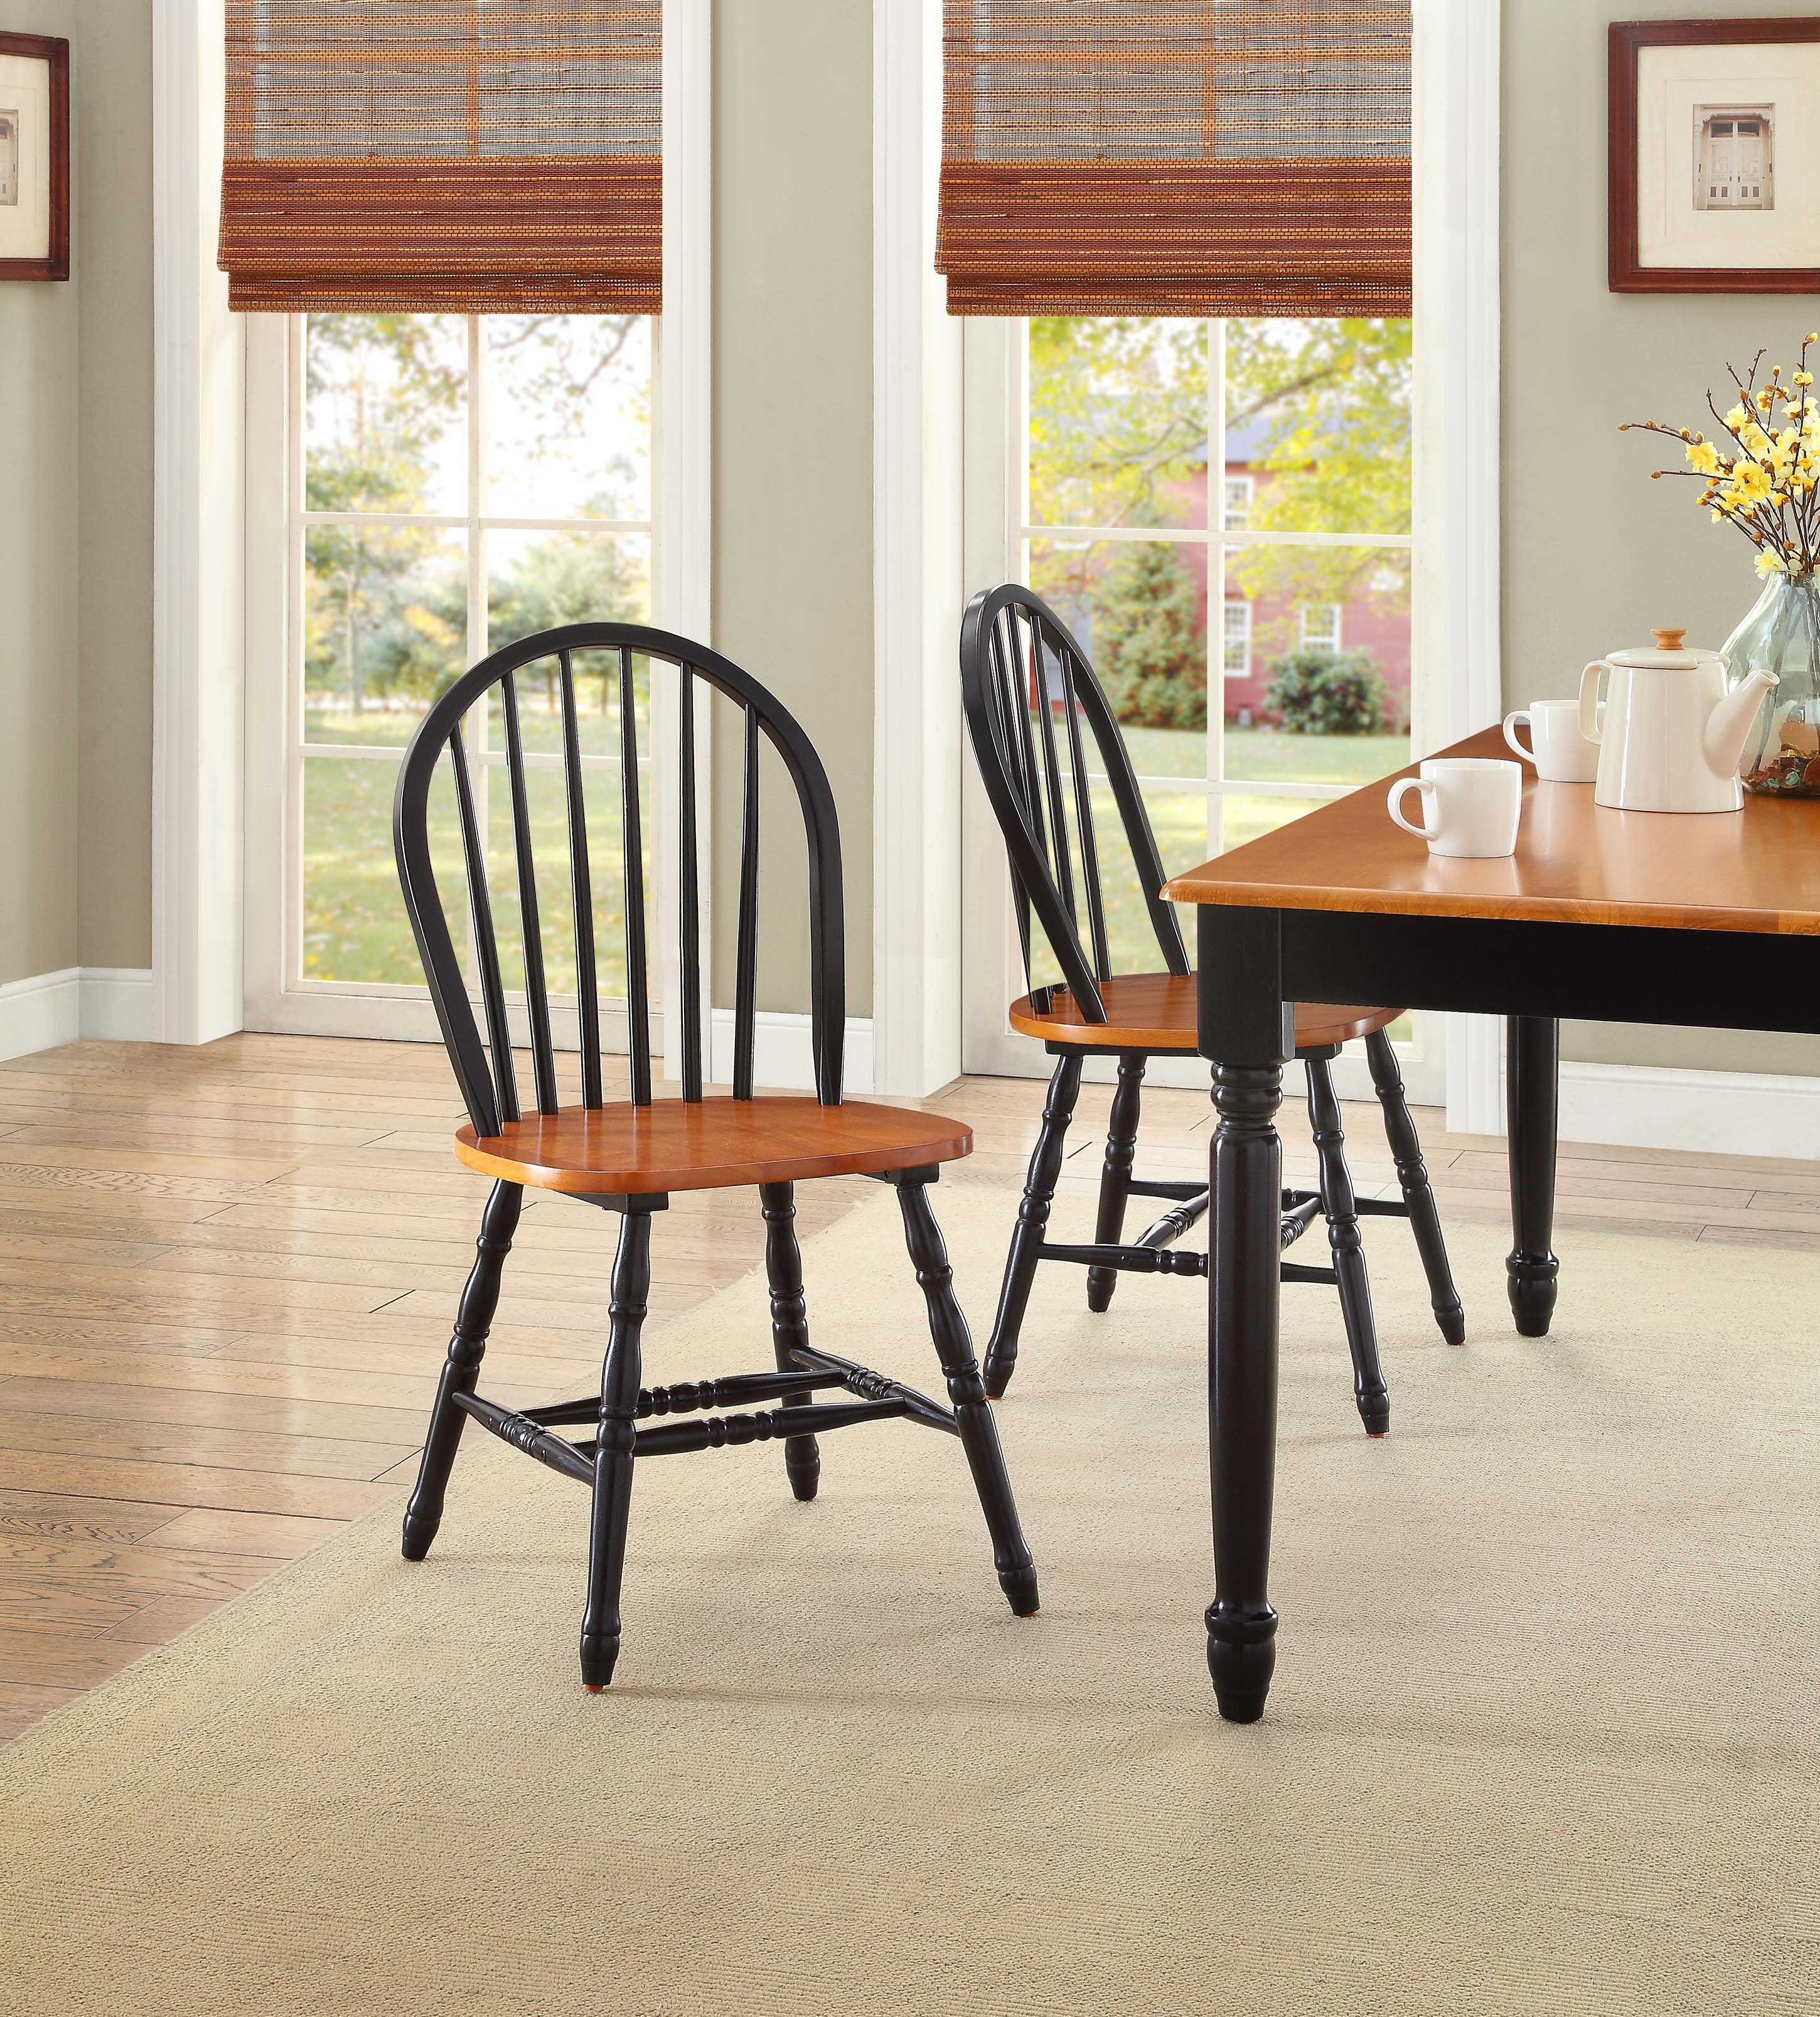 Better Homes And Gardens Autumn Lane Windsor Chairs Set Of 2 Black